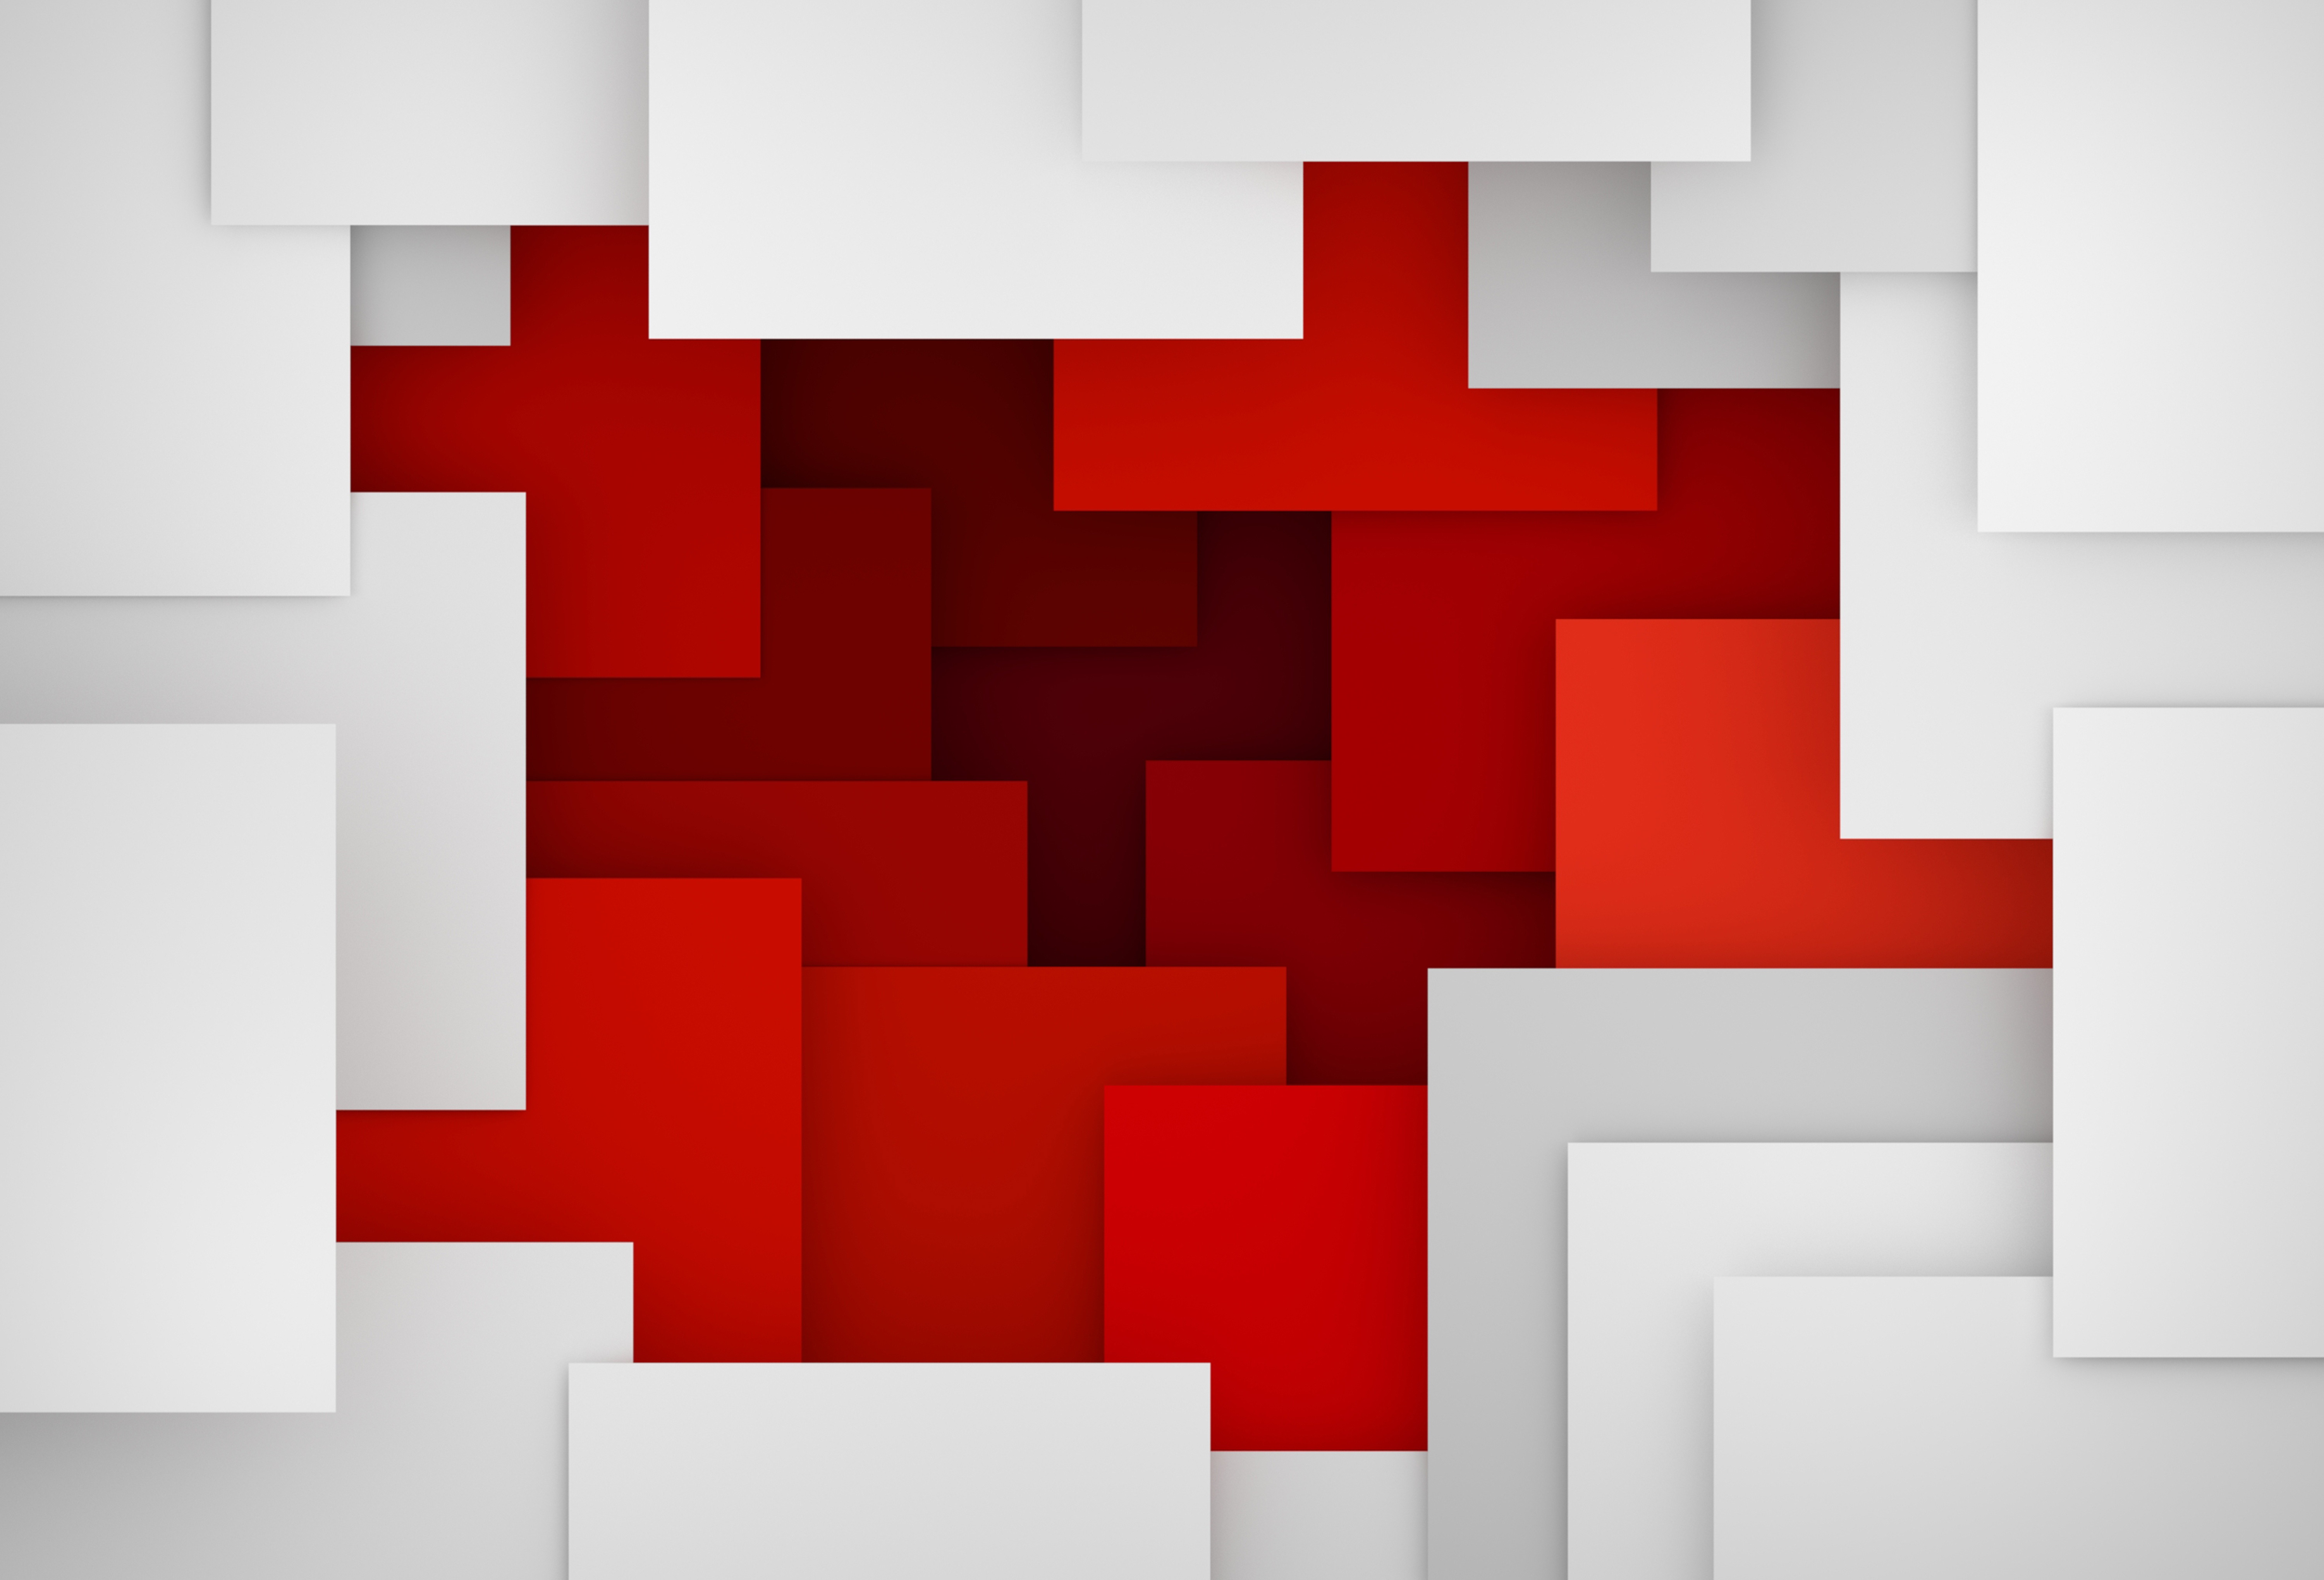 1280x1024 Artistic Geometry Red White 1280x1024 Resolution